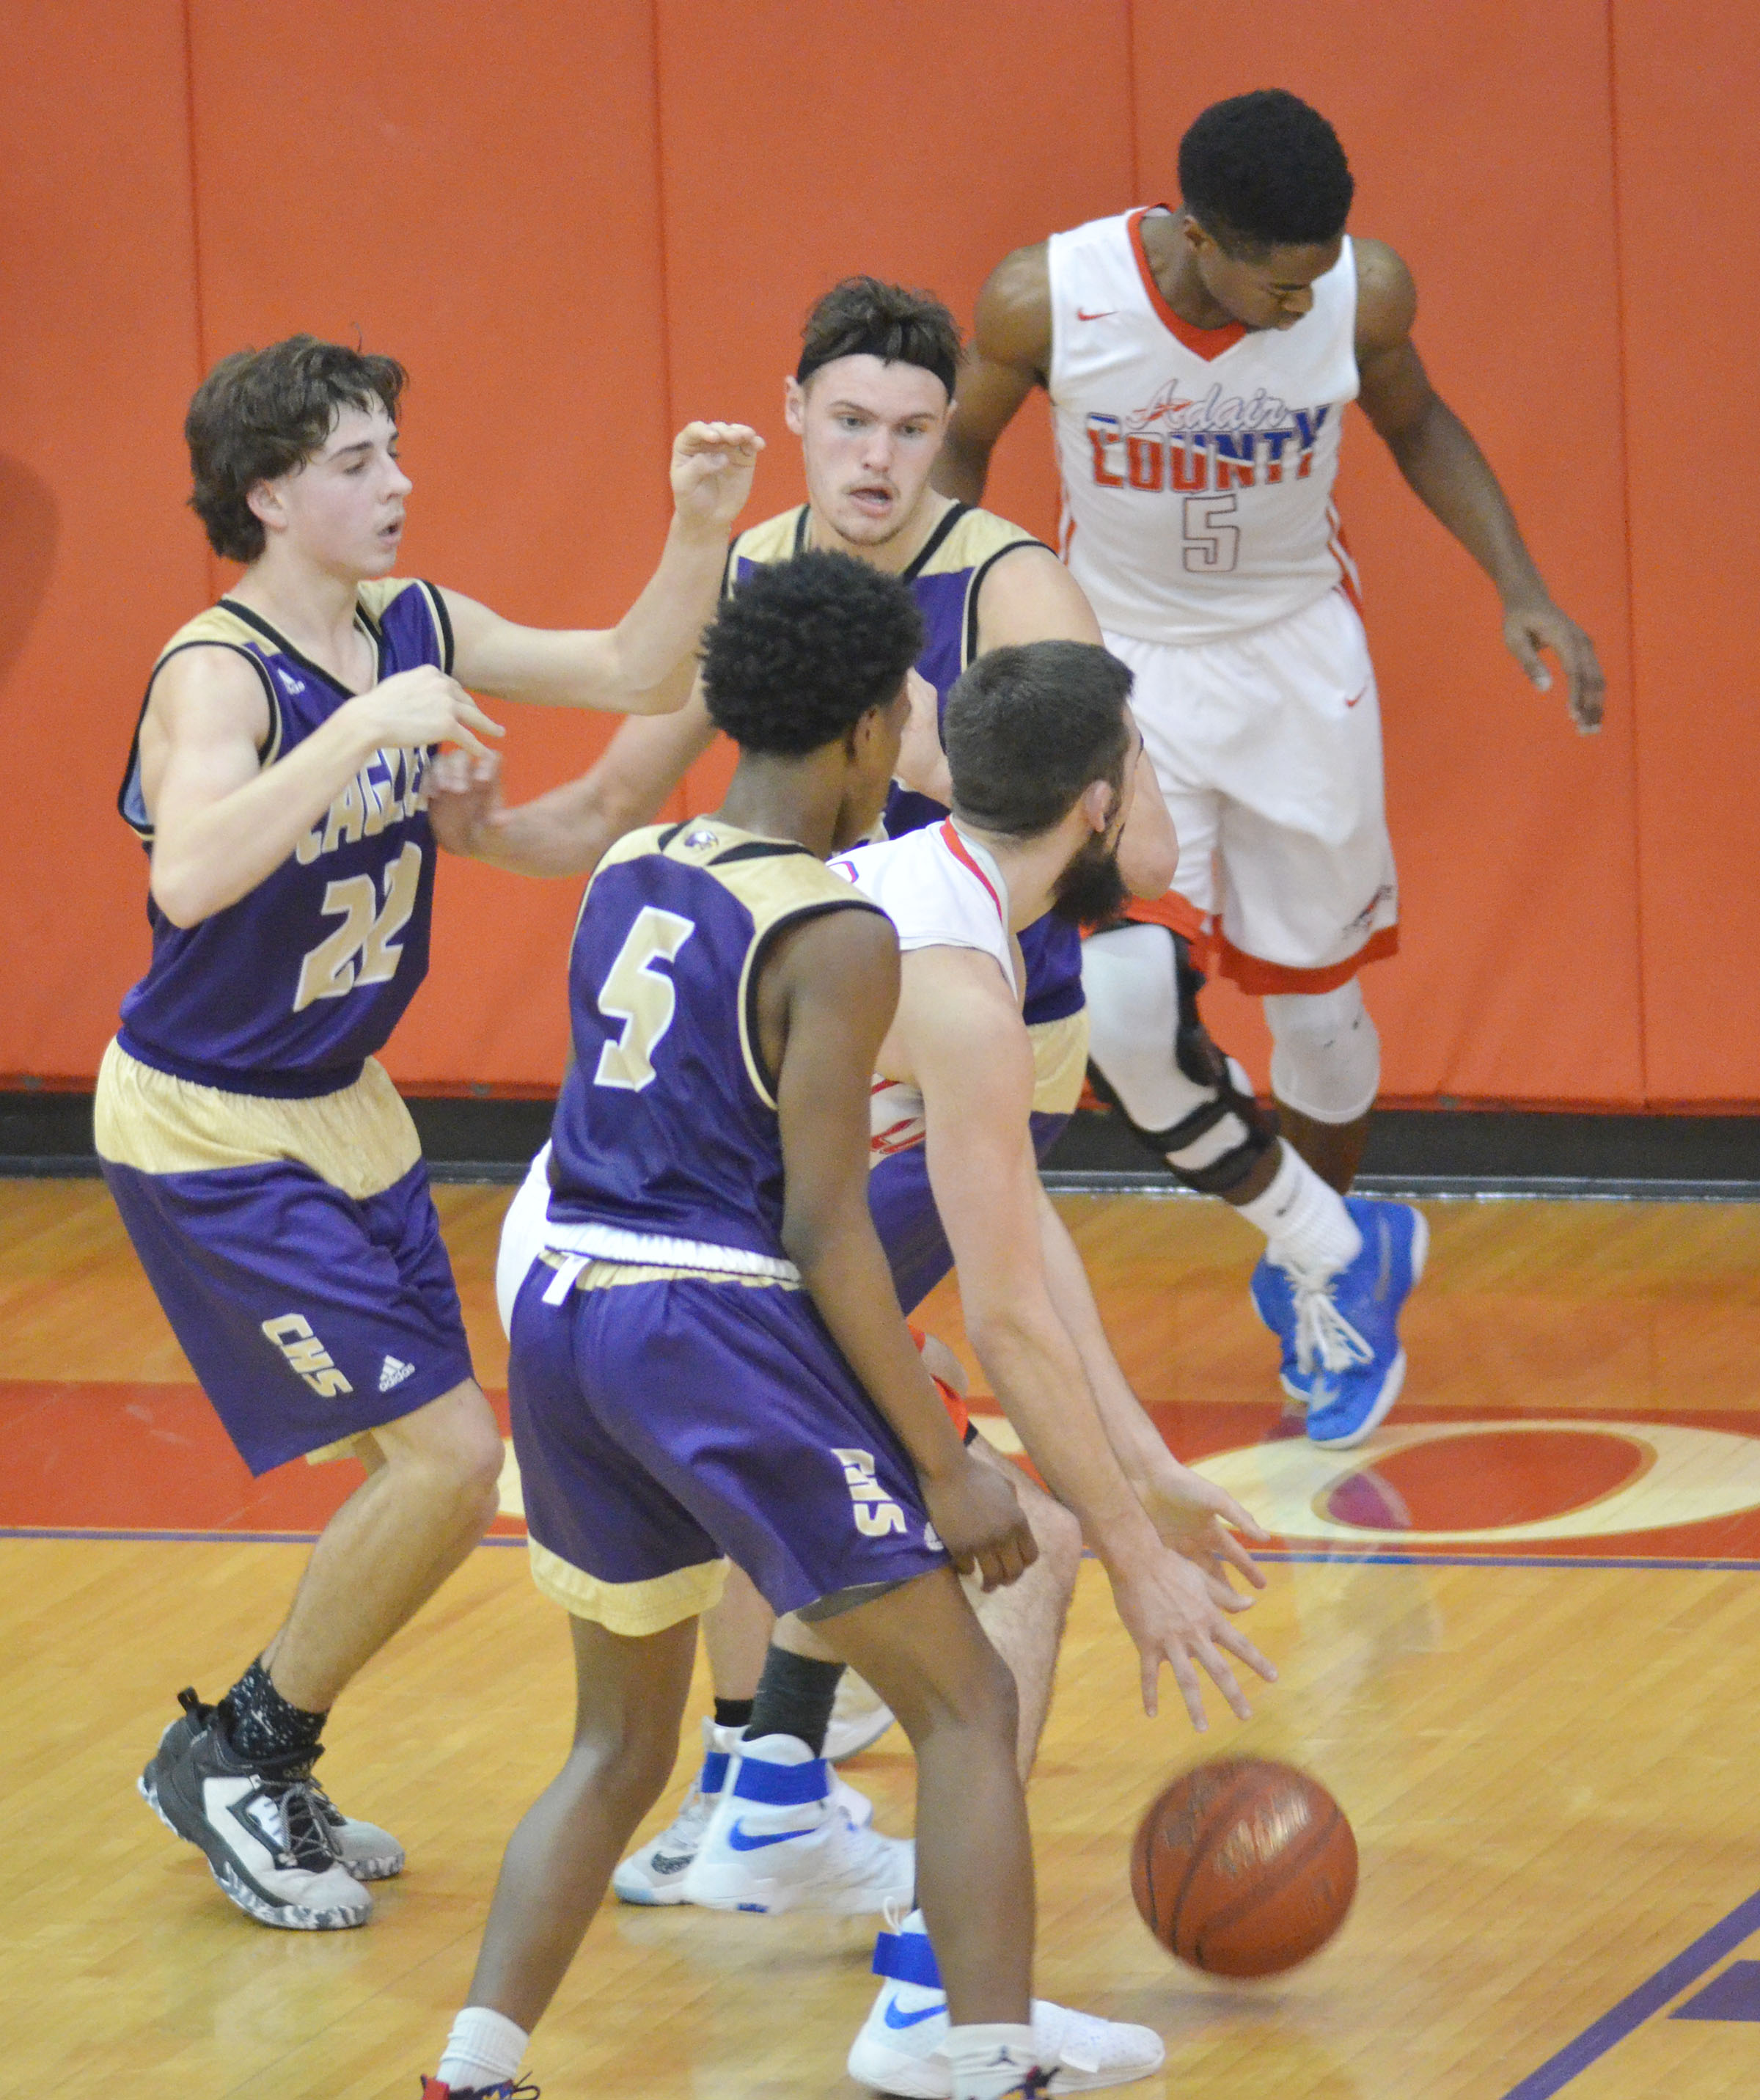 CHS freshman Malachi Corley, in front, plays defense as teammates Campbellsville Middle School eighth-grader John Orberson, at left, and CHS junior Logan Cole guard an Adair County player.